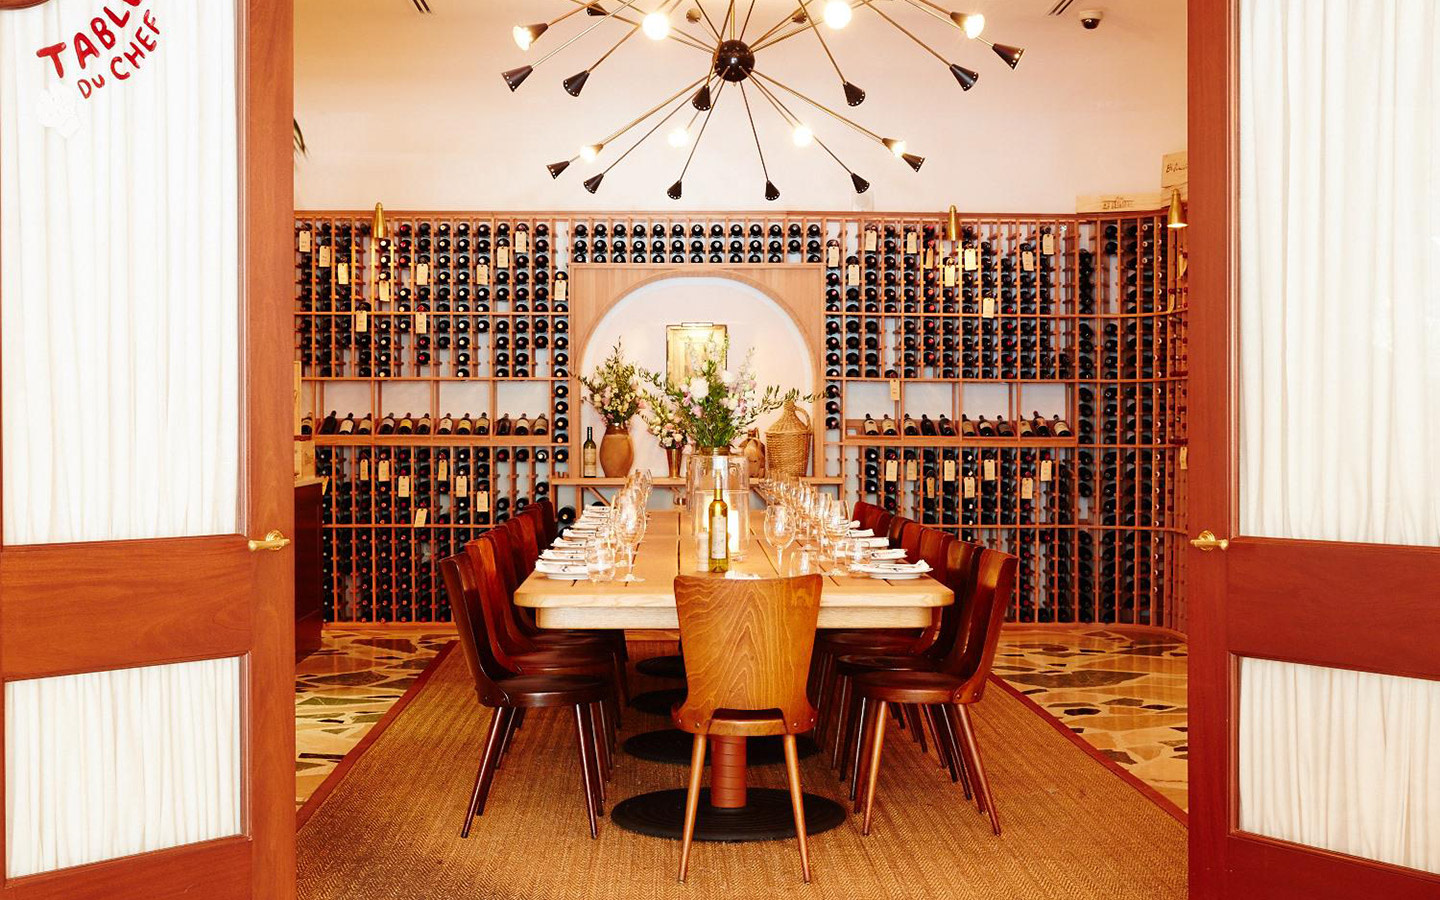 Chef's Private Dining Room